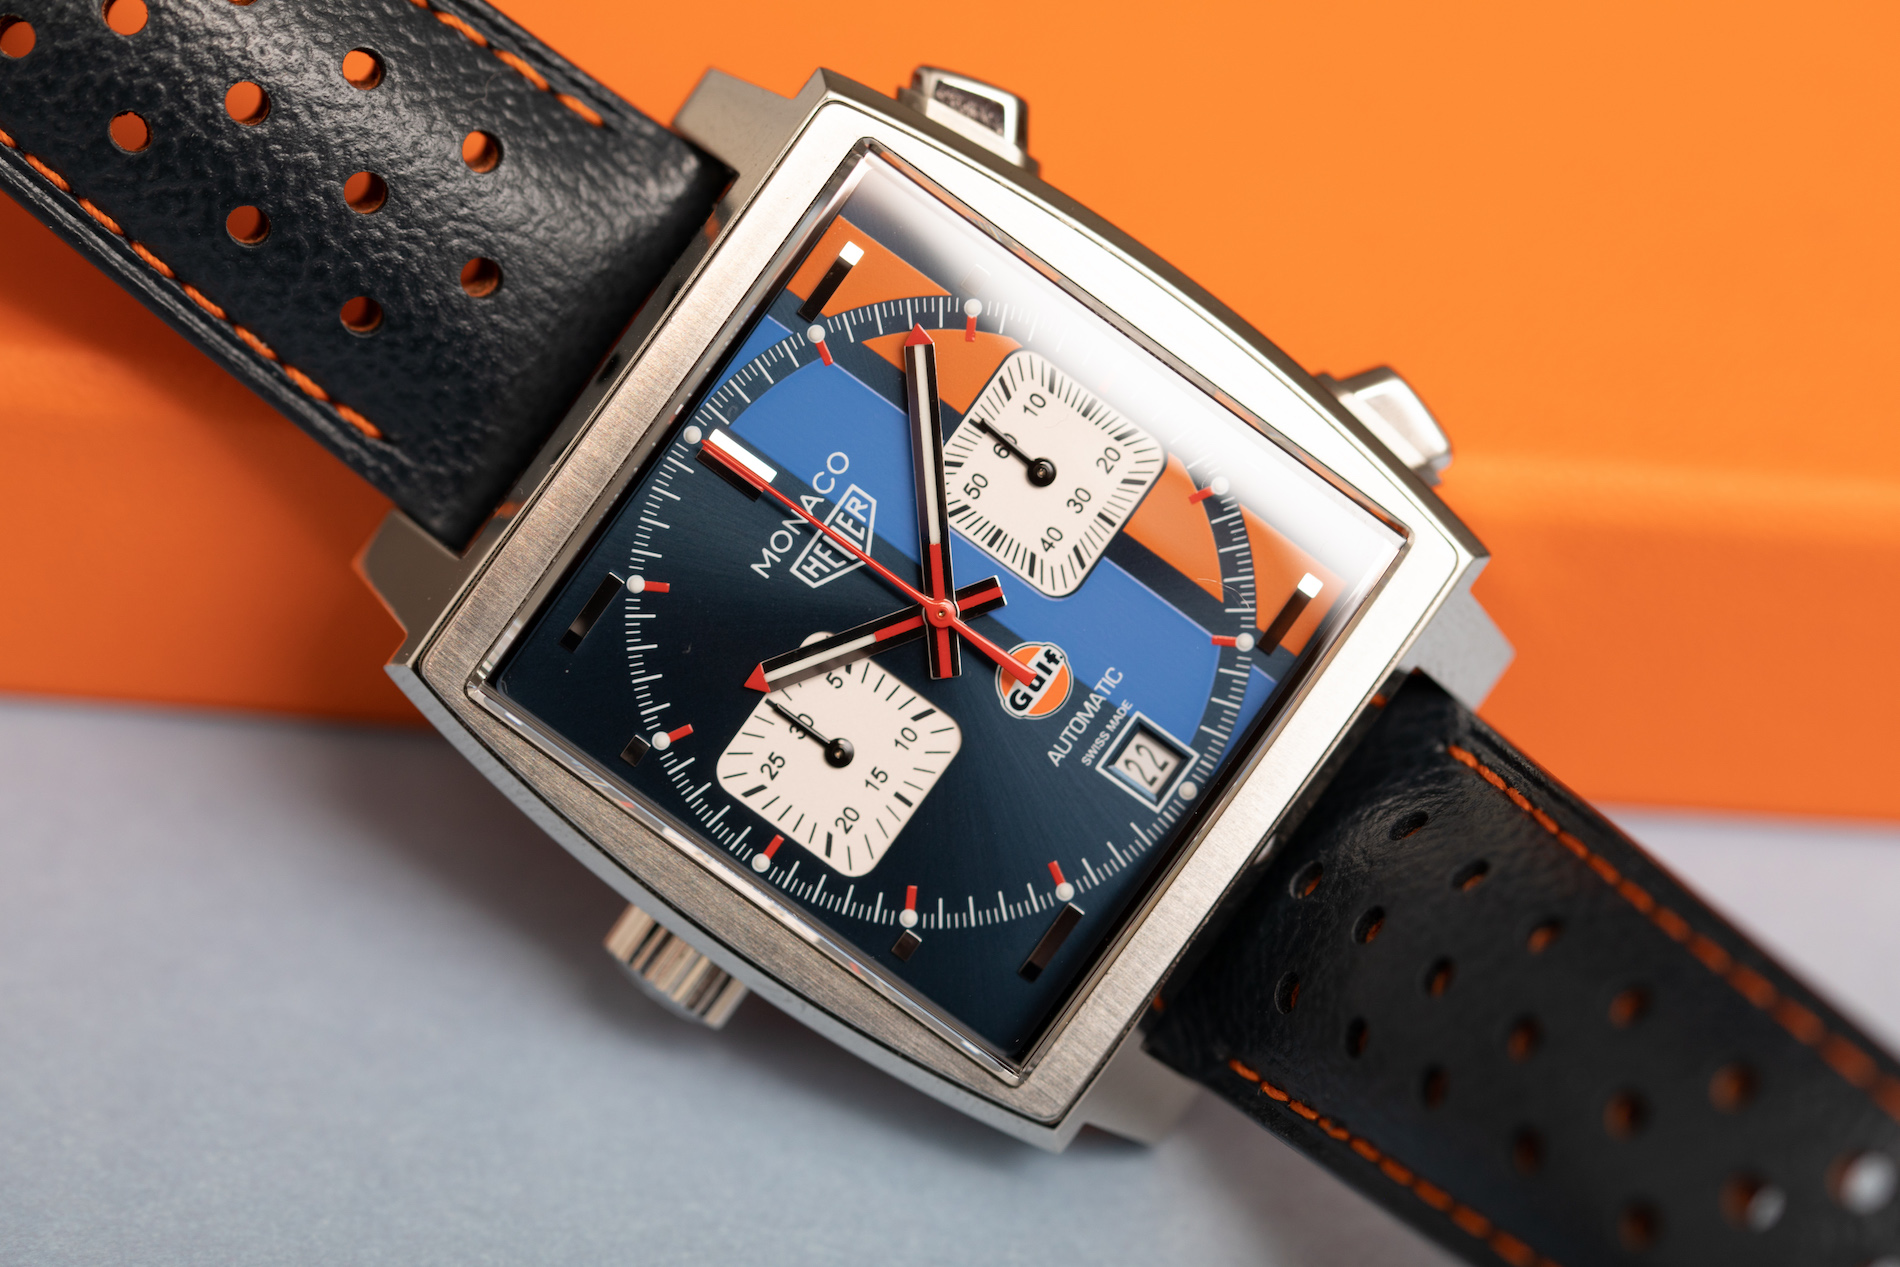 426c29a7688 The latest iteration of the TAG Heuer Monaco Gulf watch was introduced last  year to celebrate the 50th anniversary of the relationship between the  brand and ...